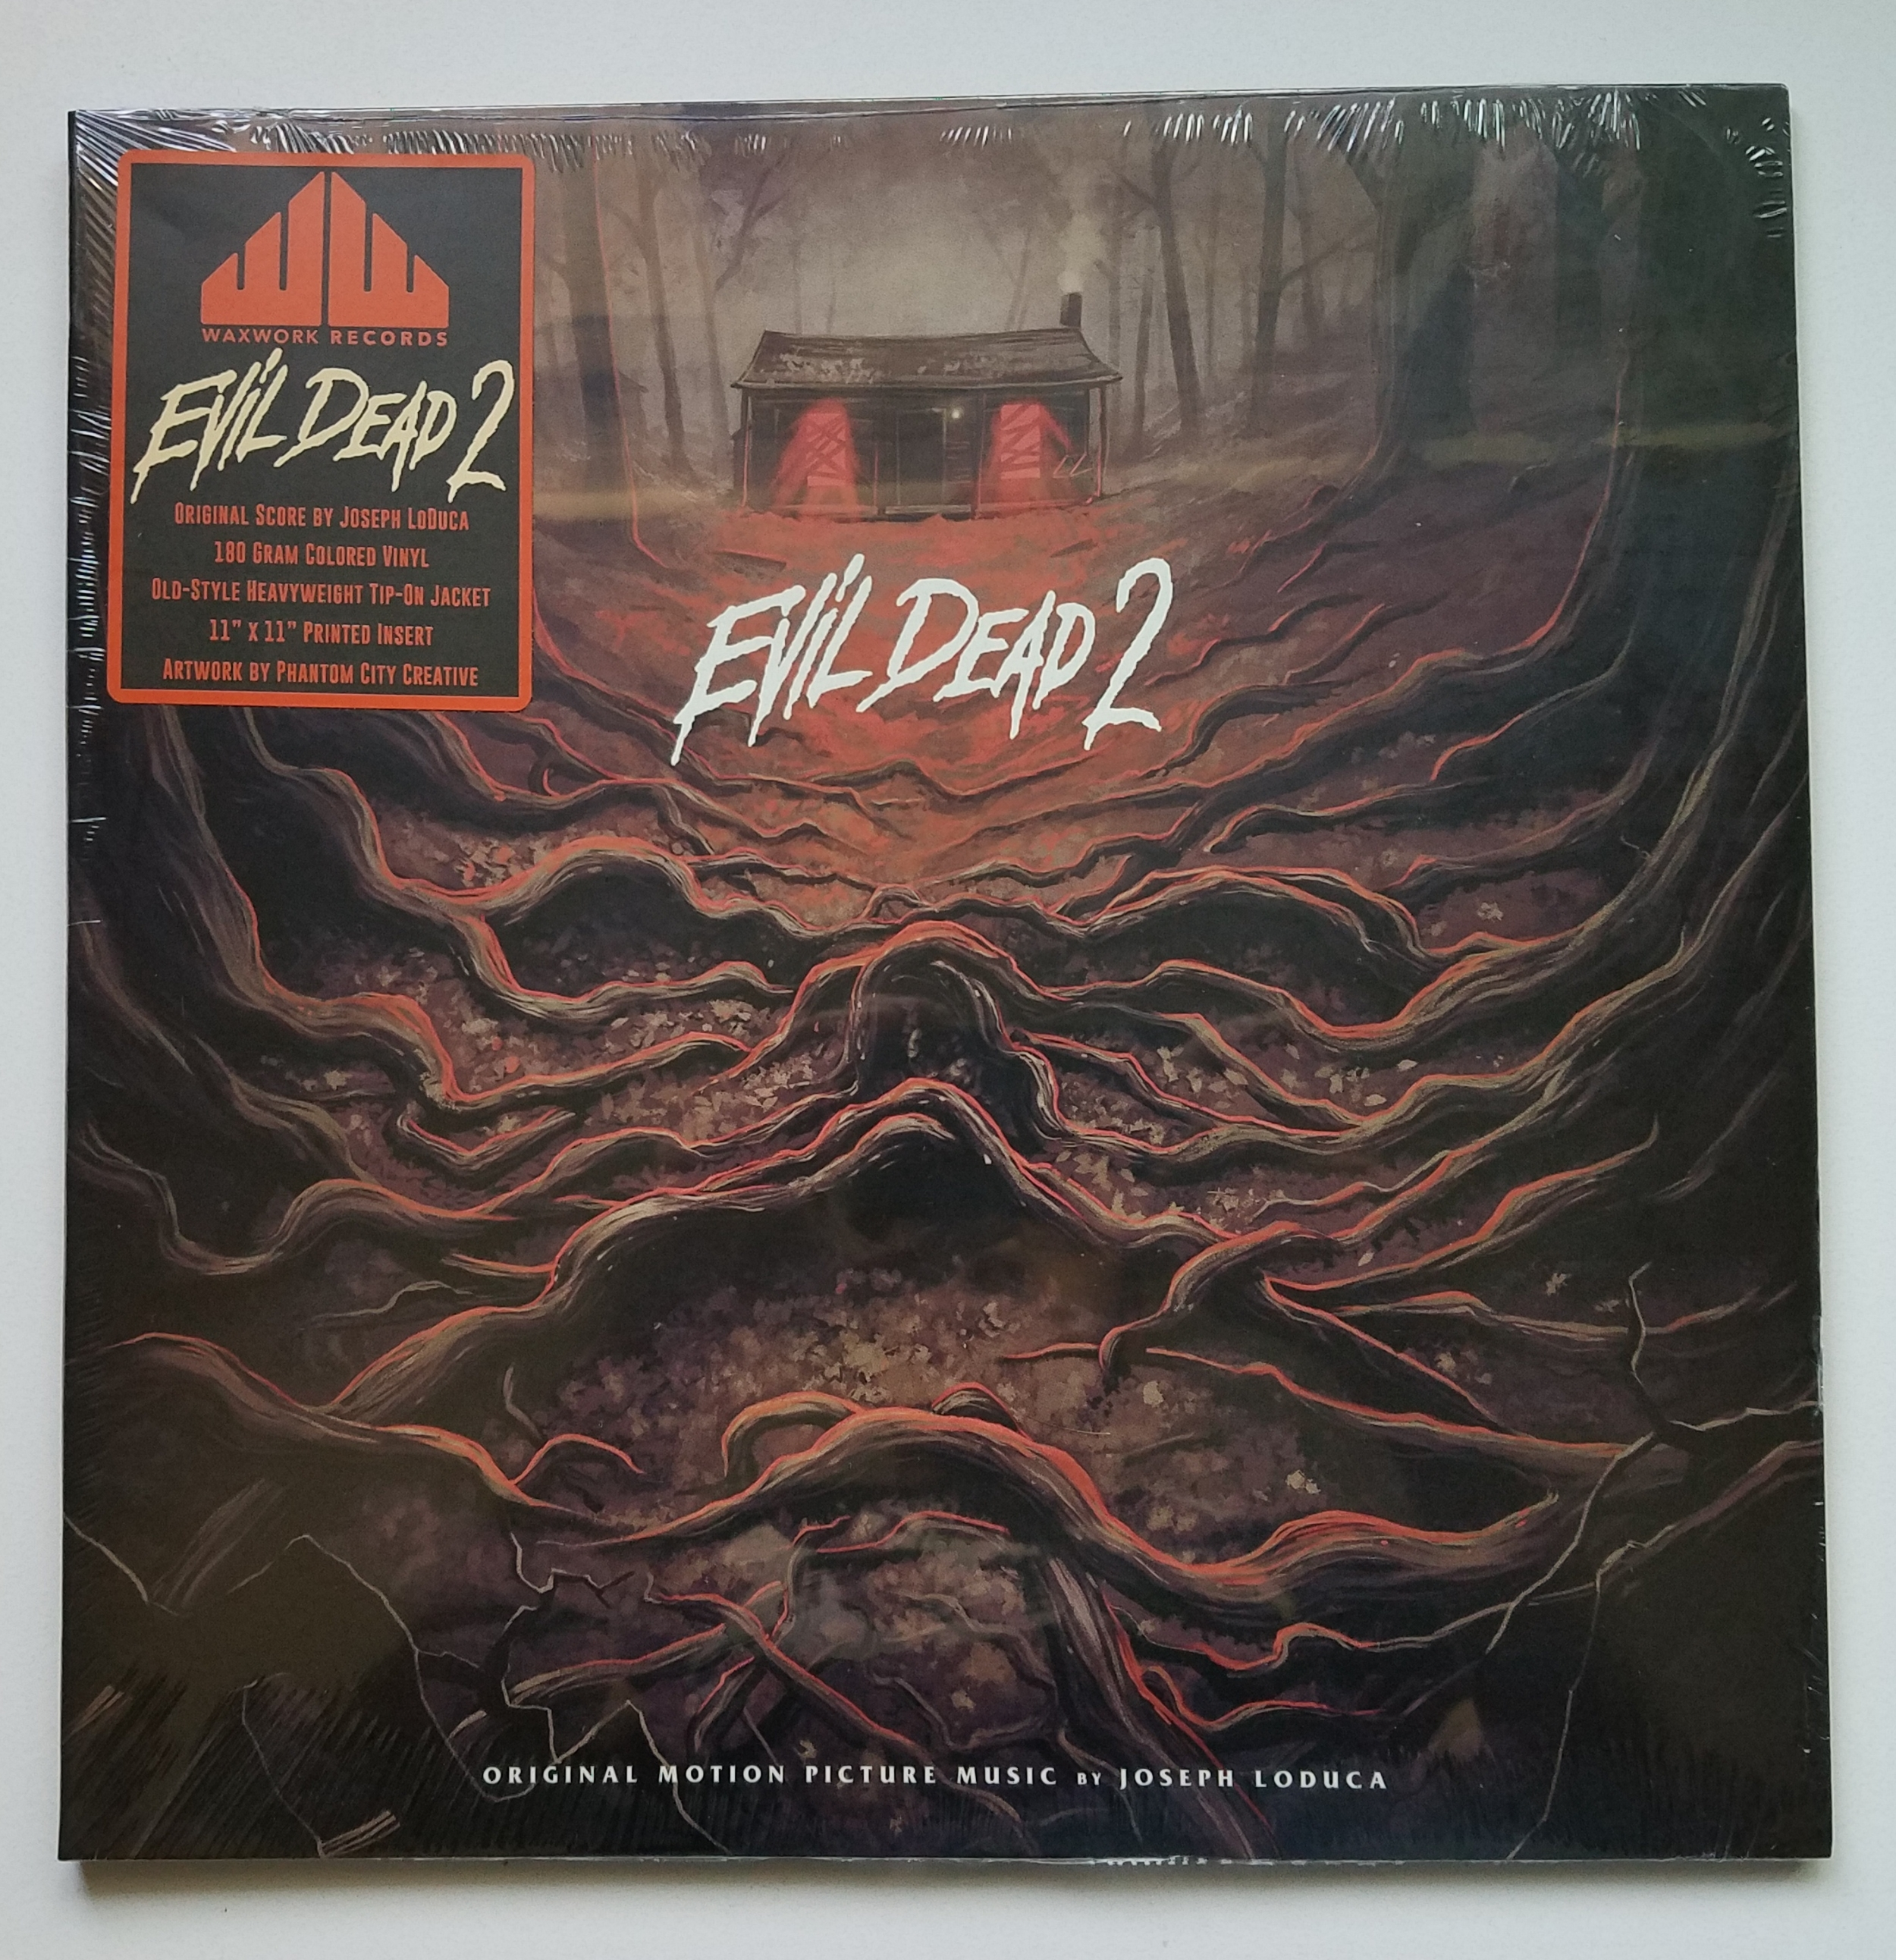 Evil Dead 2 Original Motion Picture Soundtrack 2xLP (Yellow Vinyl)